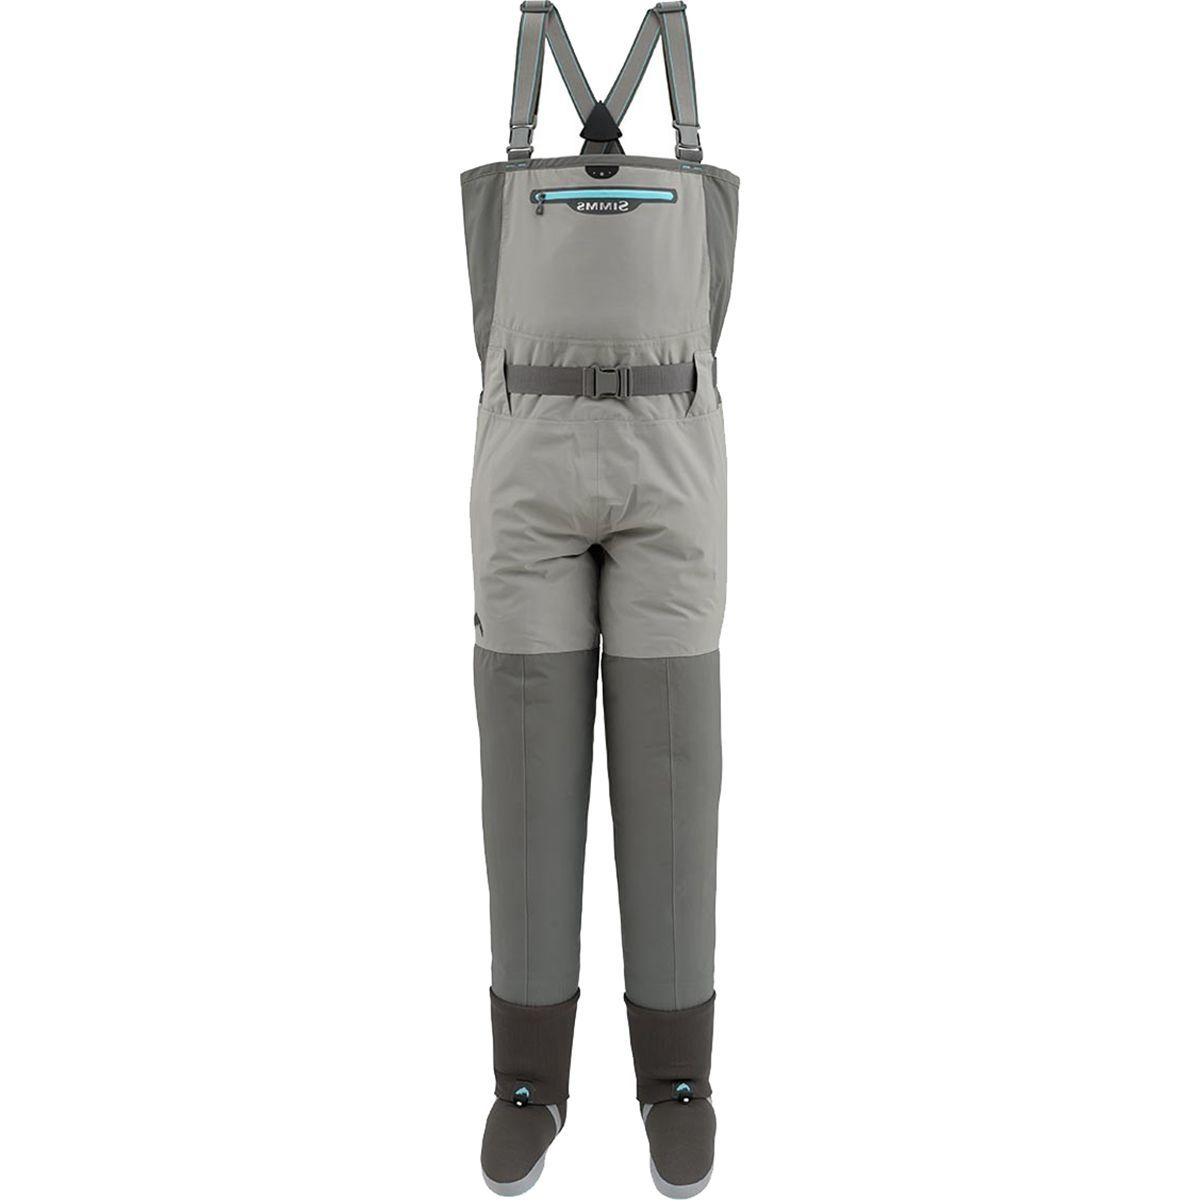 Simms Freestone Stockingfoot Wader - Women's